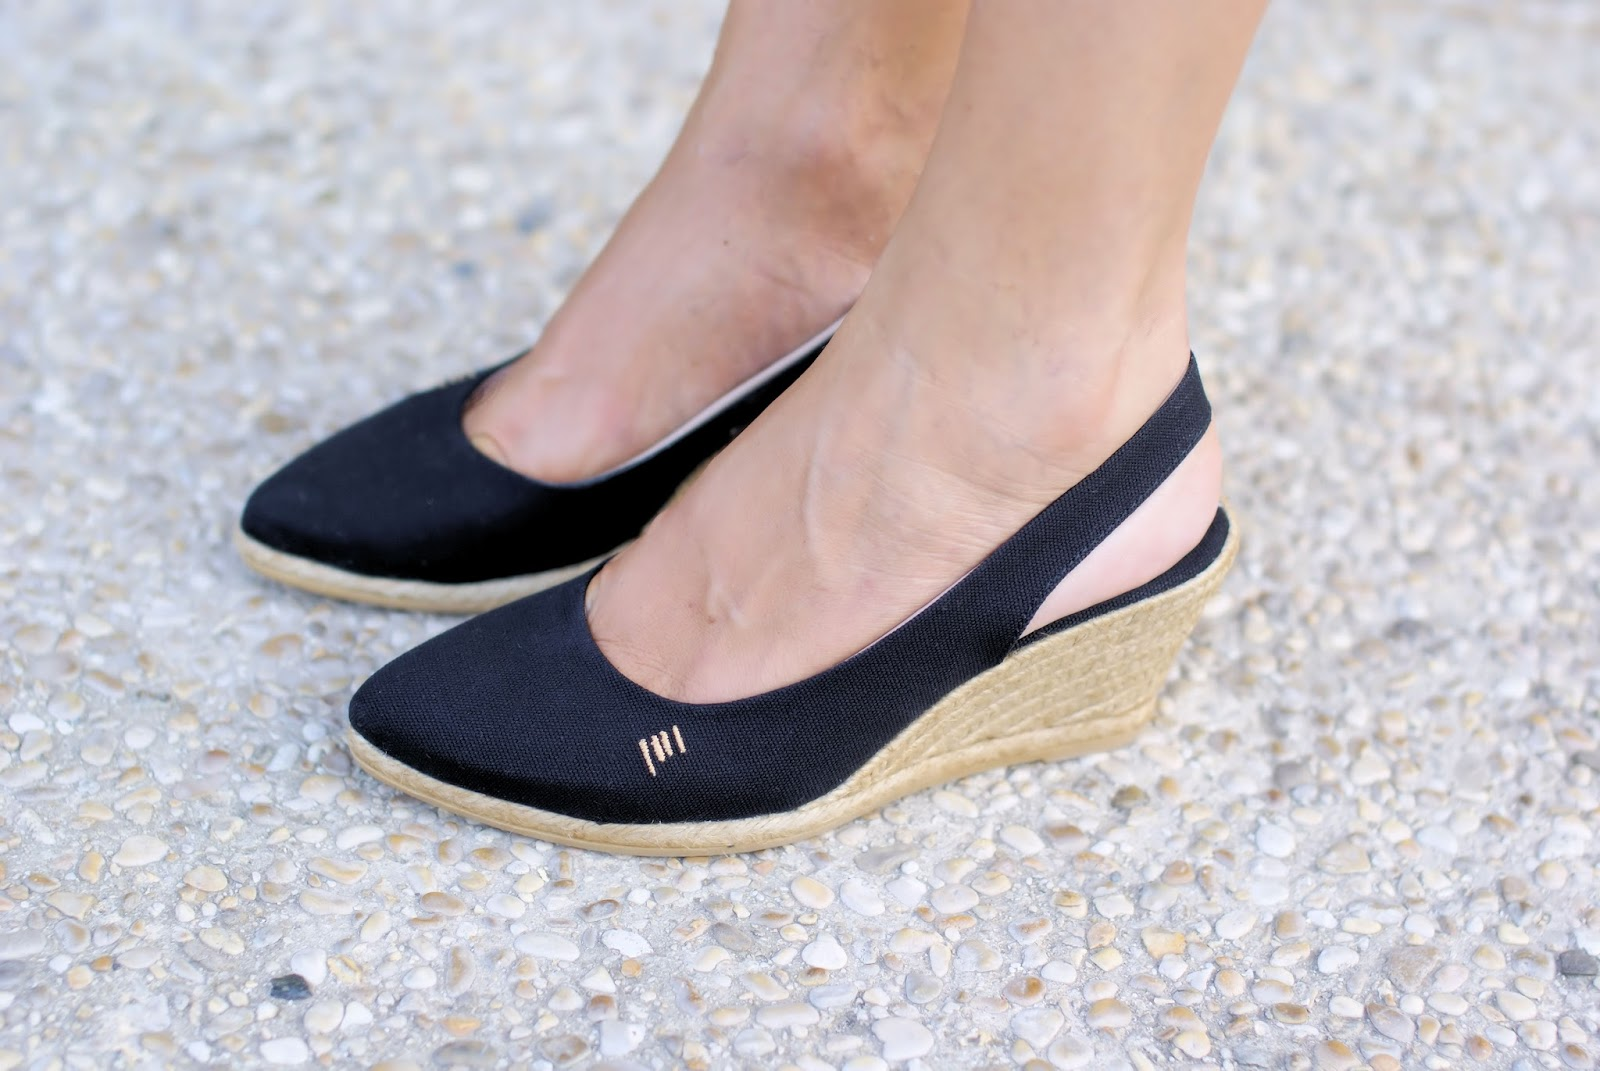 Viscata wedge Lloret espadrillas on Fashion and Cookies fashion blog, fashion blogger